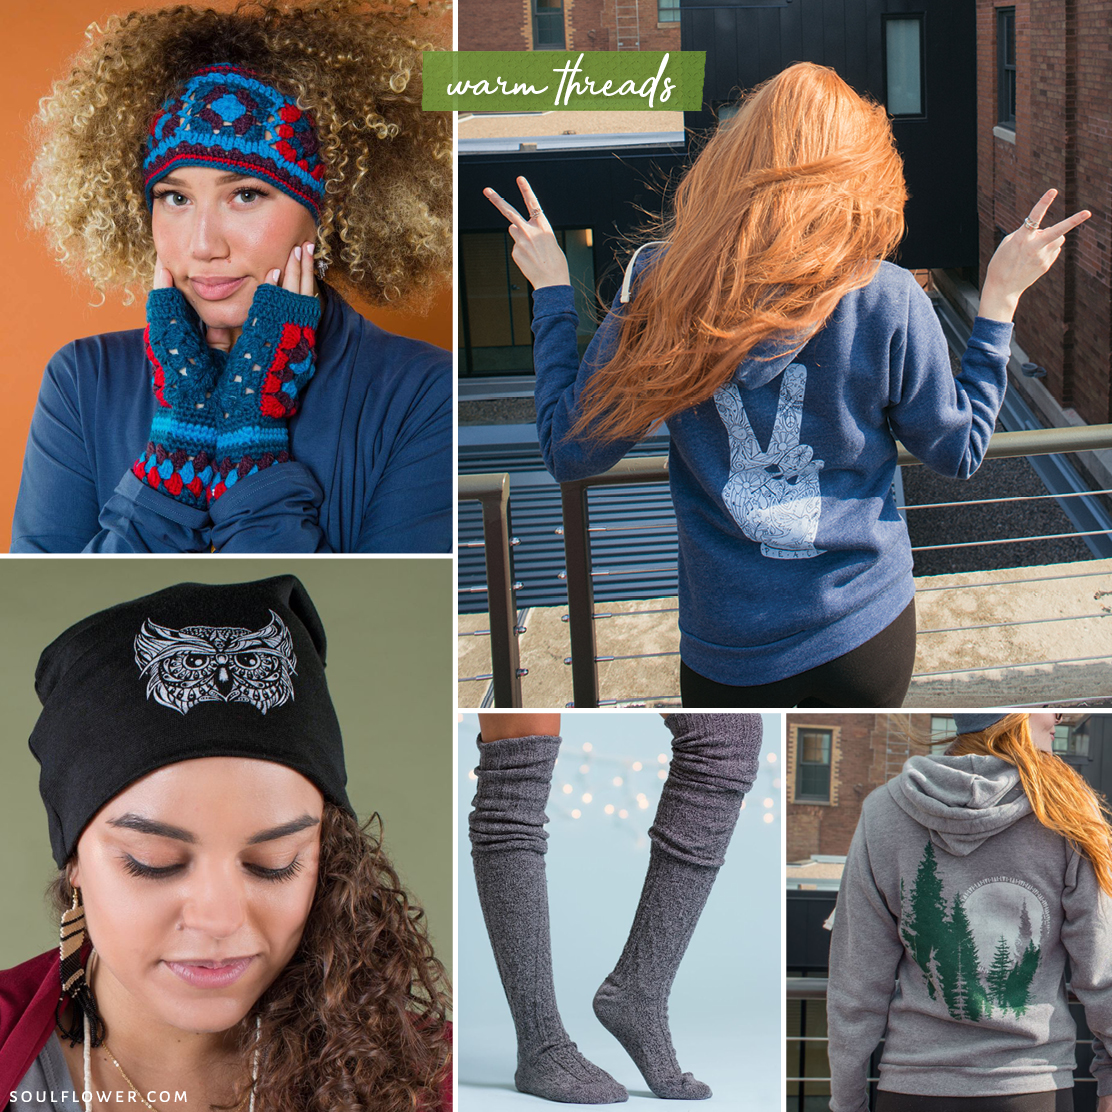 vegan gift ideas warm threads - Vegan Gift Ideas - Vegan Holiday Gifts